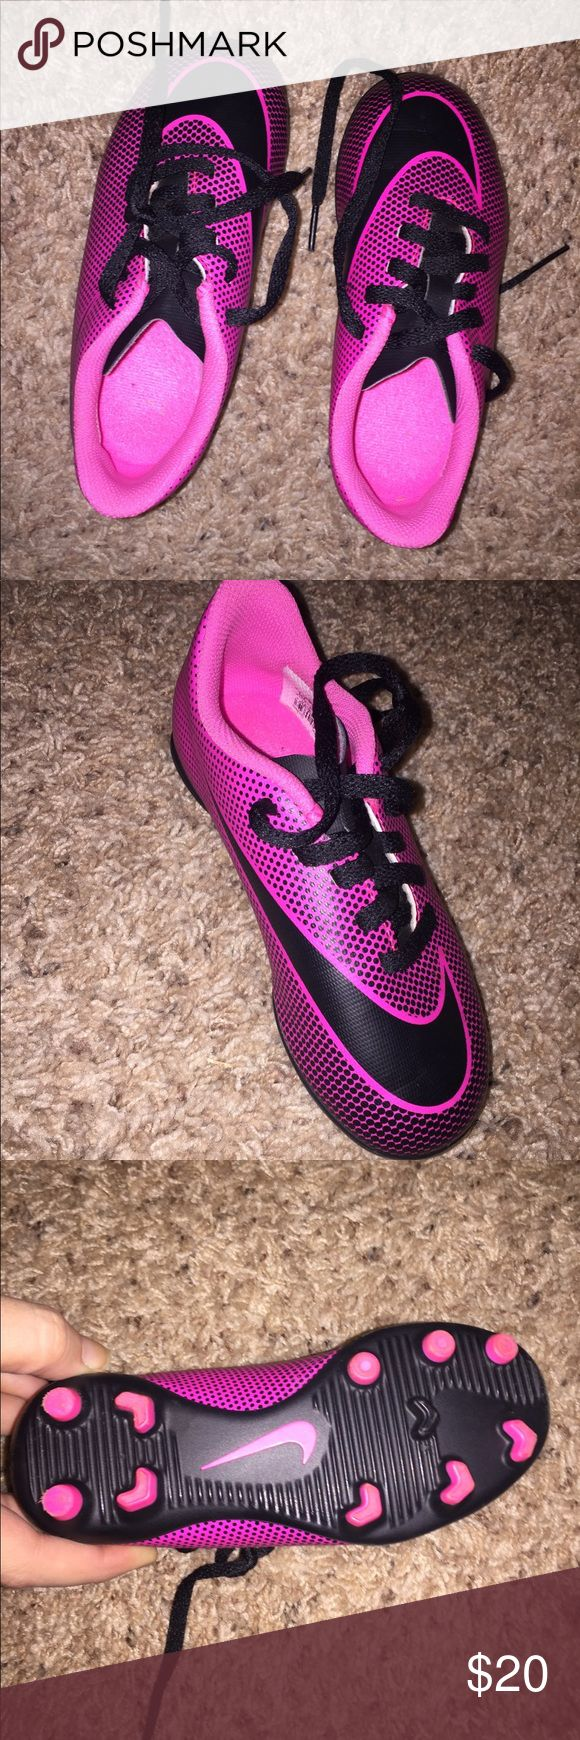 NIKE TODDLER CLEATS SIZE 10C Worn maybe 3 times indoors. Just grew right out of them! Box included. Nike Shoes Sneakers